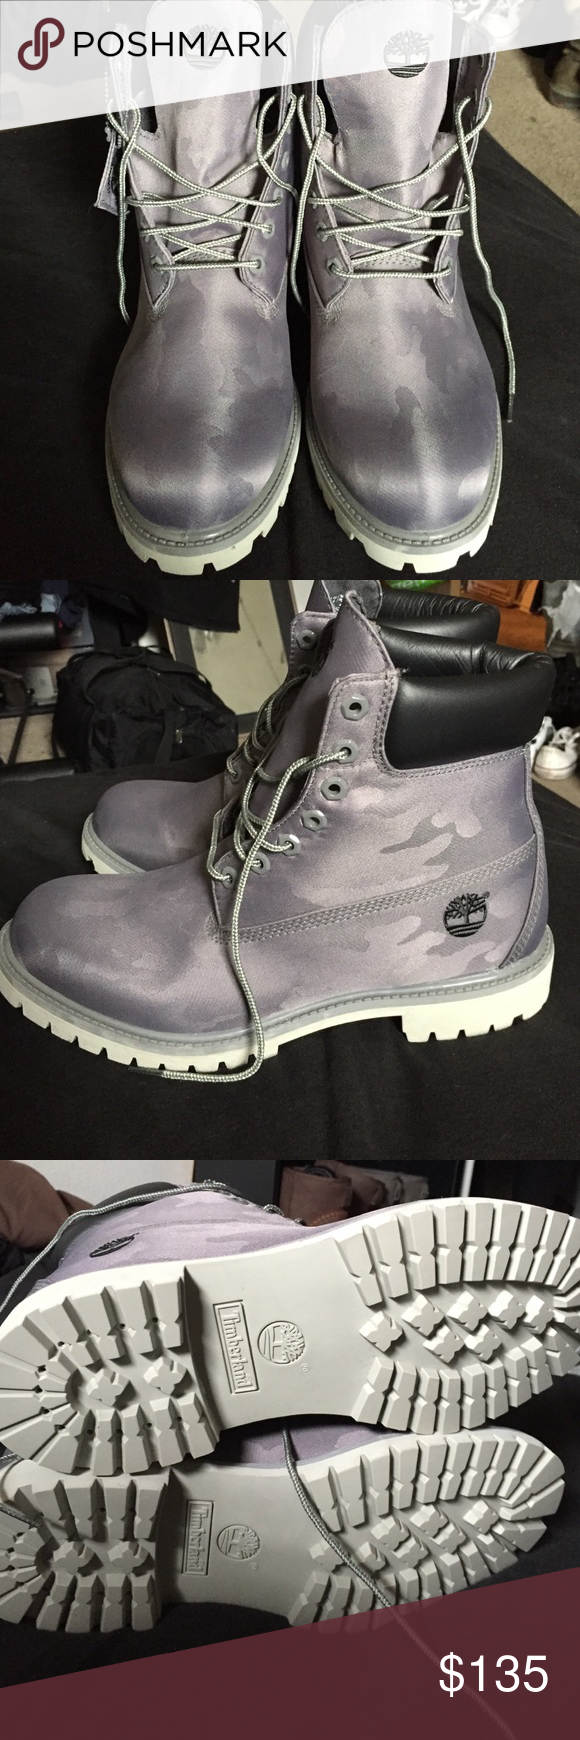 Grey camo Timberland Boots size